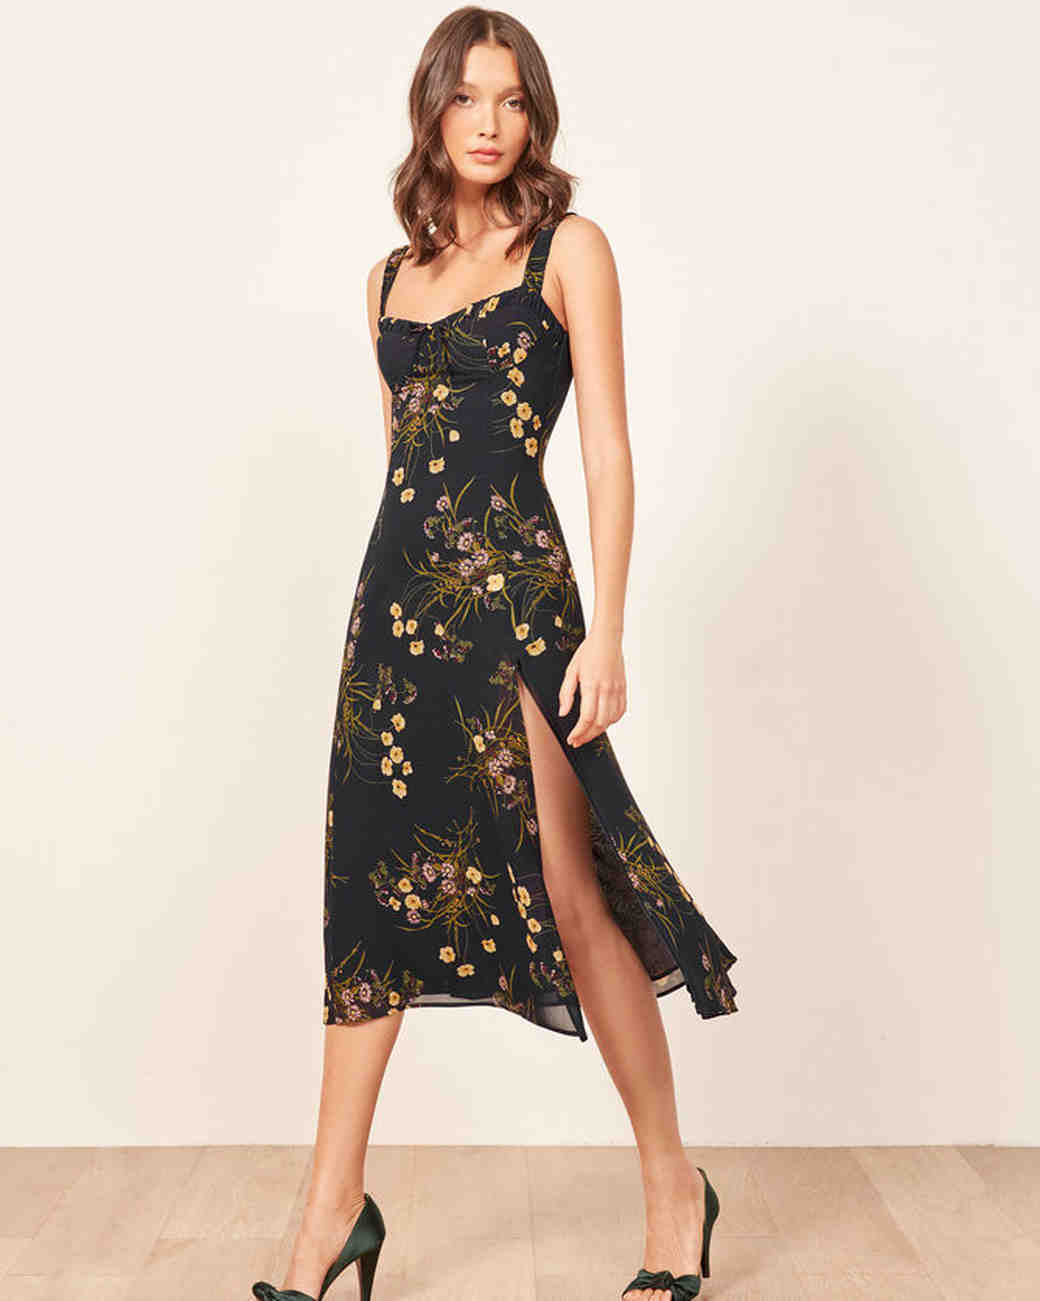 Floral Wedding Guest Dresses for Fall